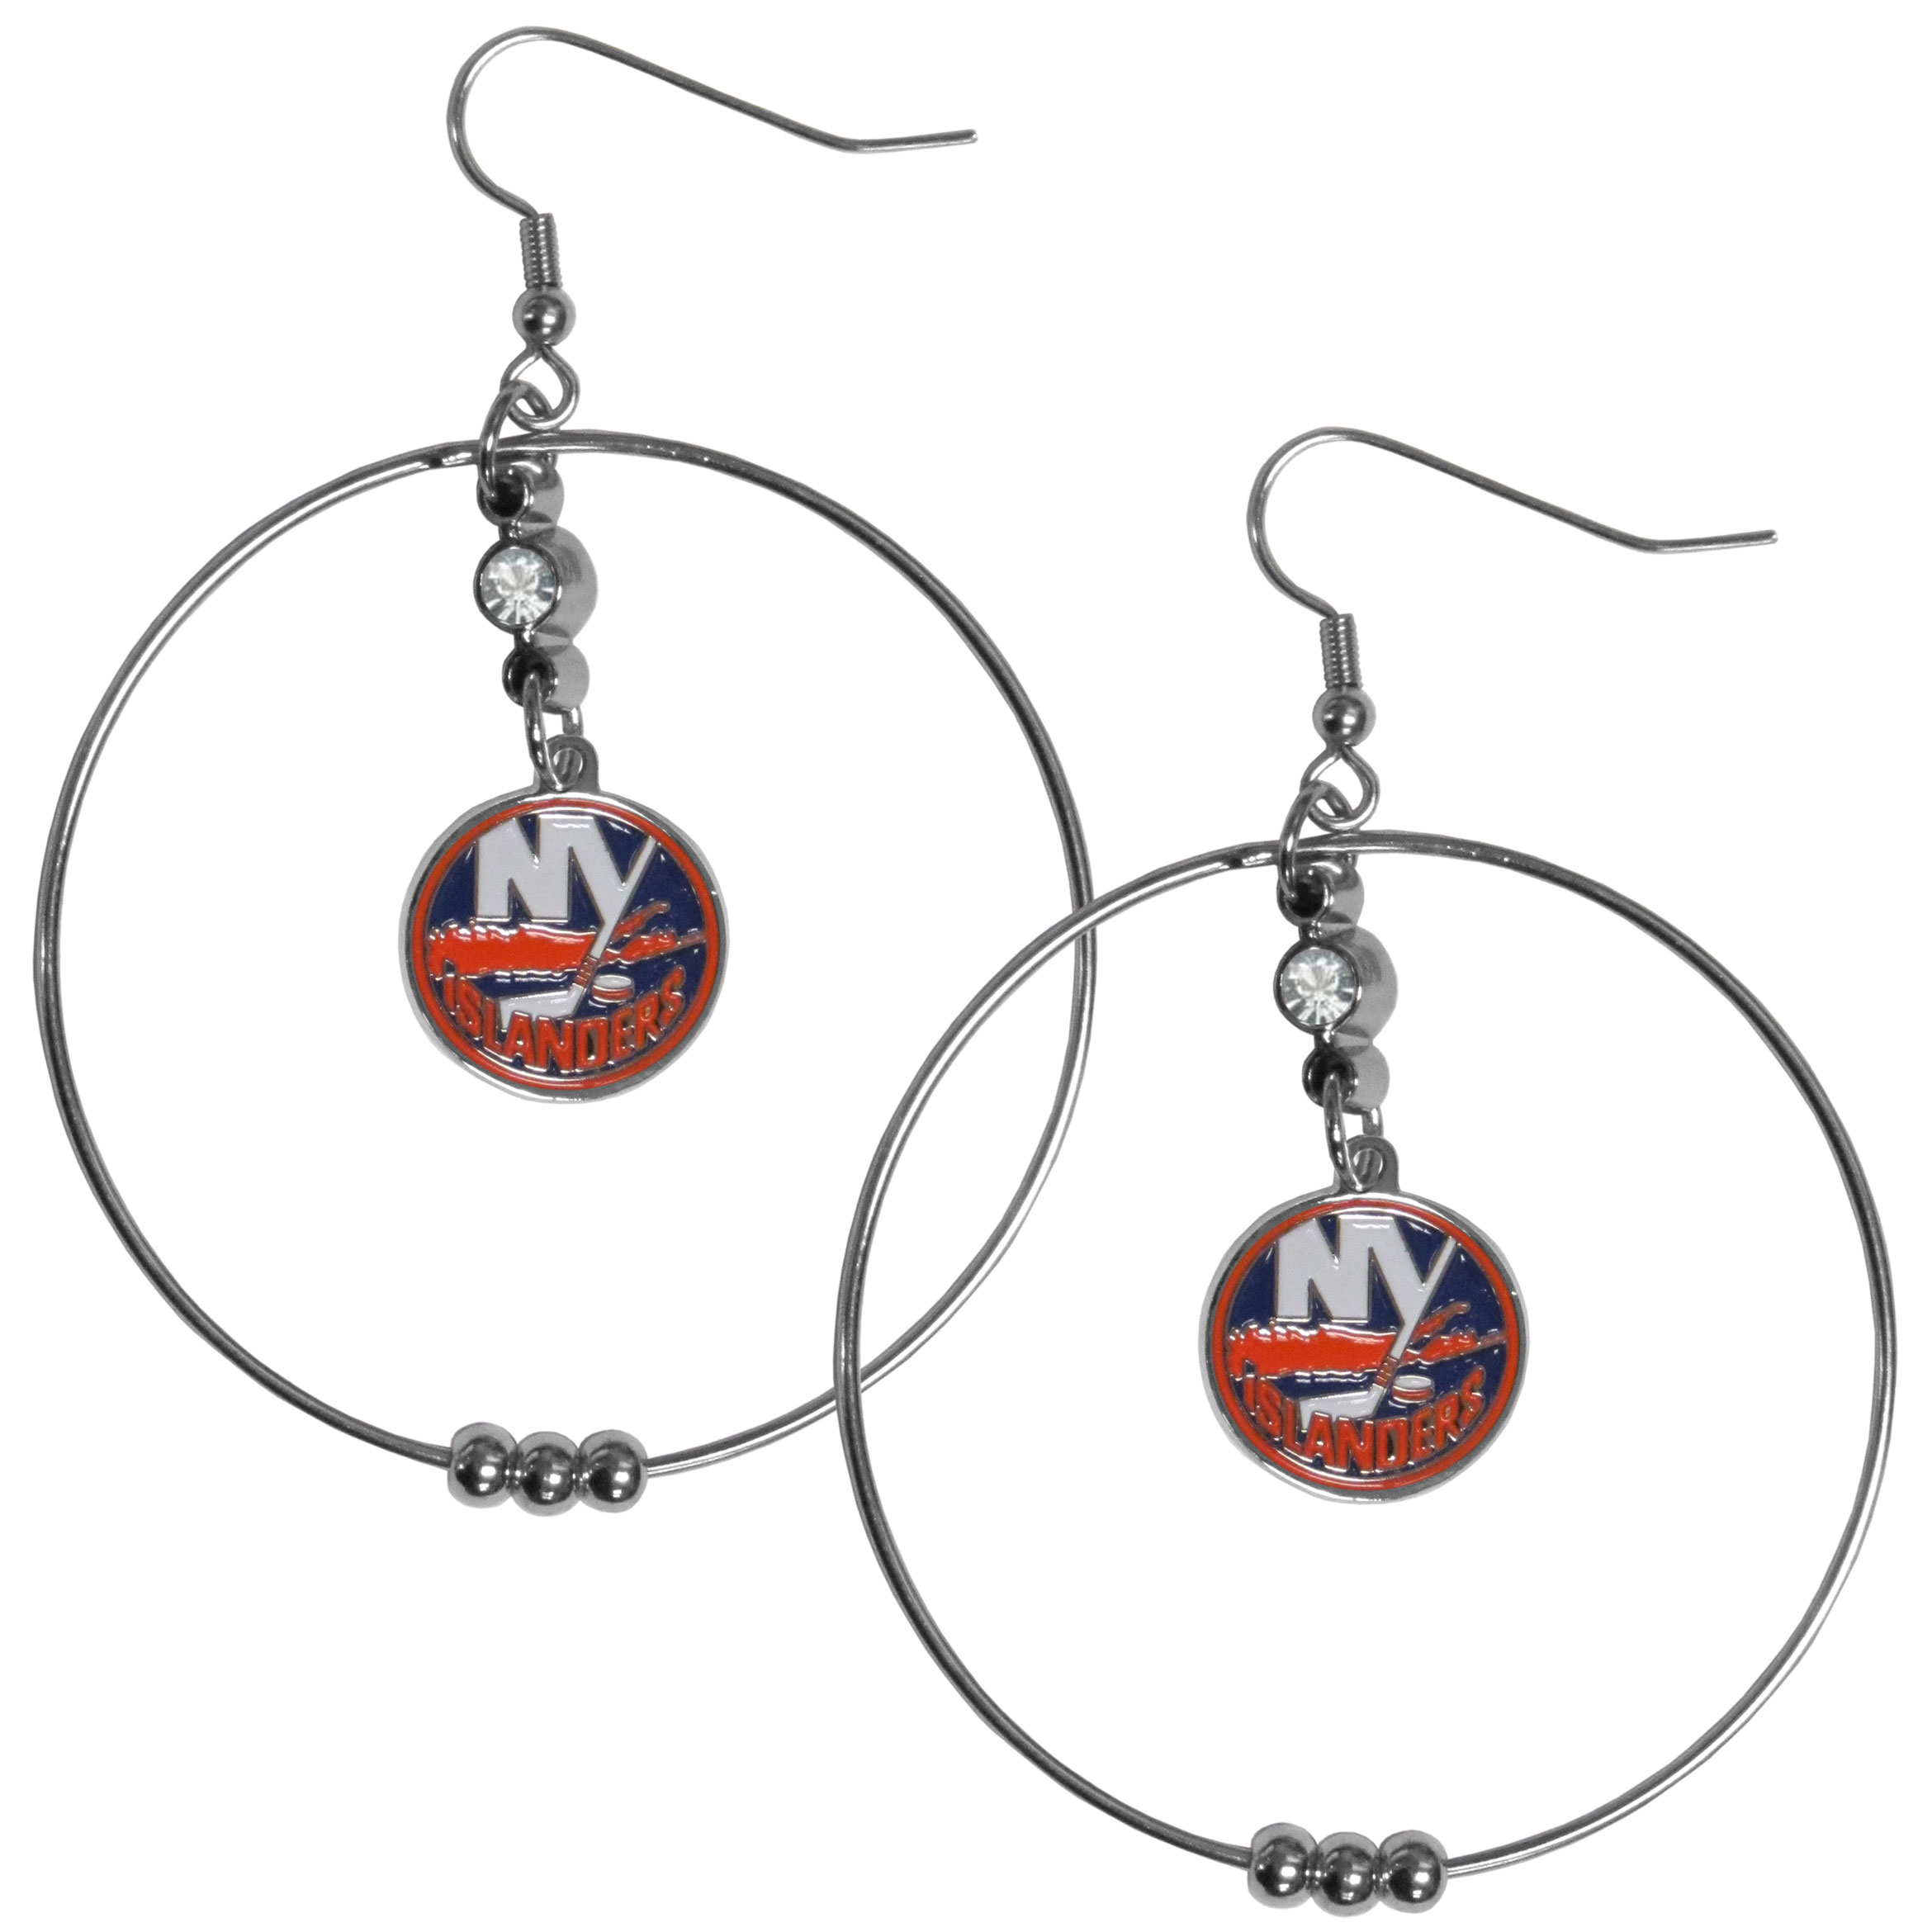 New York Islanders® 2 Inch Hoop Earrings - Our large hoop earrings have a fully cast and enameled New York Islanders® charm with enameled detail and a high polish nickel free chrome finish and rhinestone access. Hypoallergenic fishhook posts.